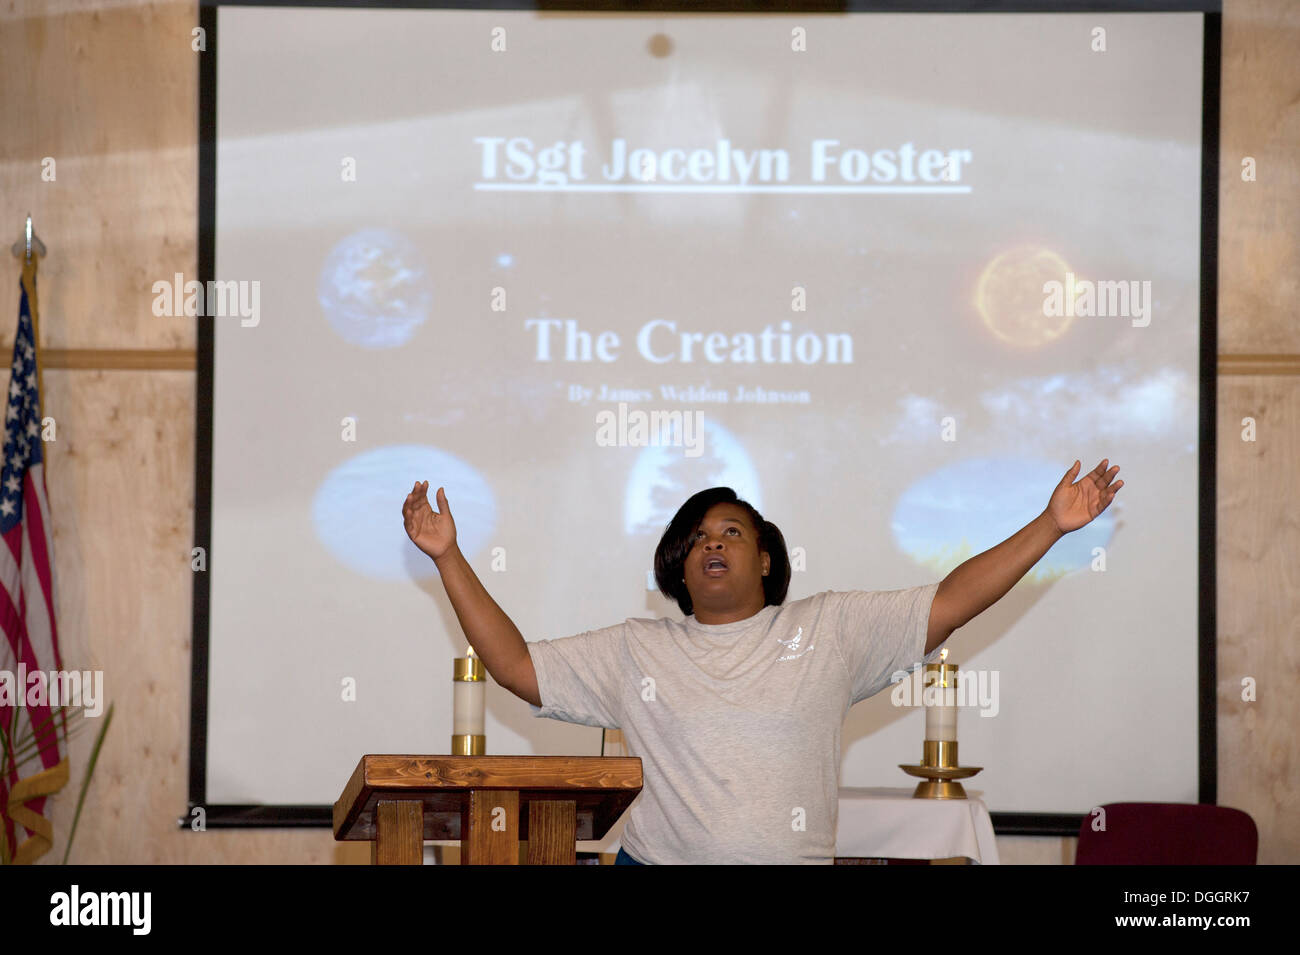 Tech. Sgt. Jocelyn Foster tells a poetic story of 'The Creation' based on the creation account in the book of Genesis during a music extravaganza at the 376th Air Expeditionary Wing Chapel at Transit Center at Manas, Kyrgyzstan, Oct. 6, 2013. Foster is a - Stock Image